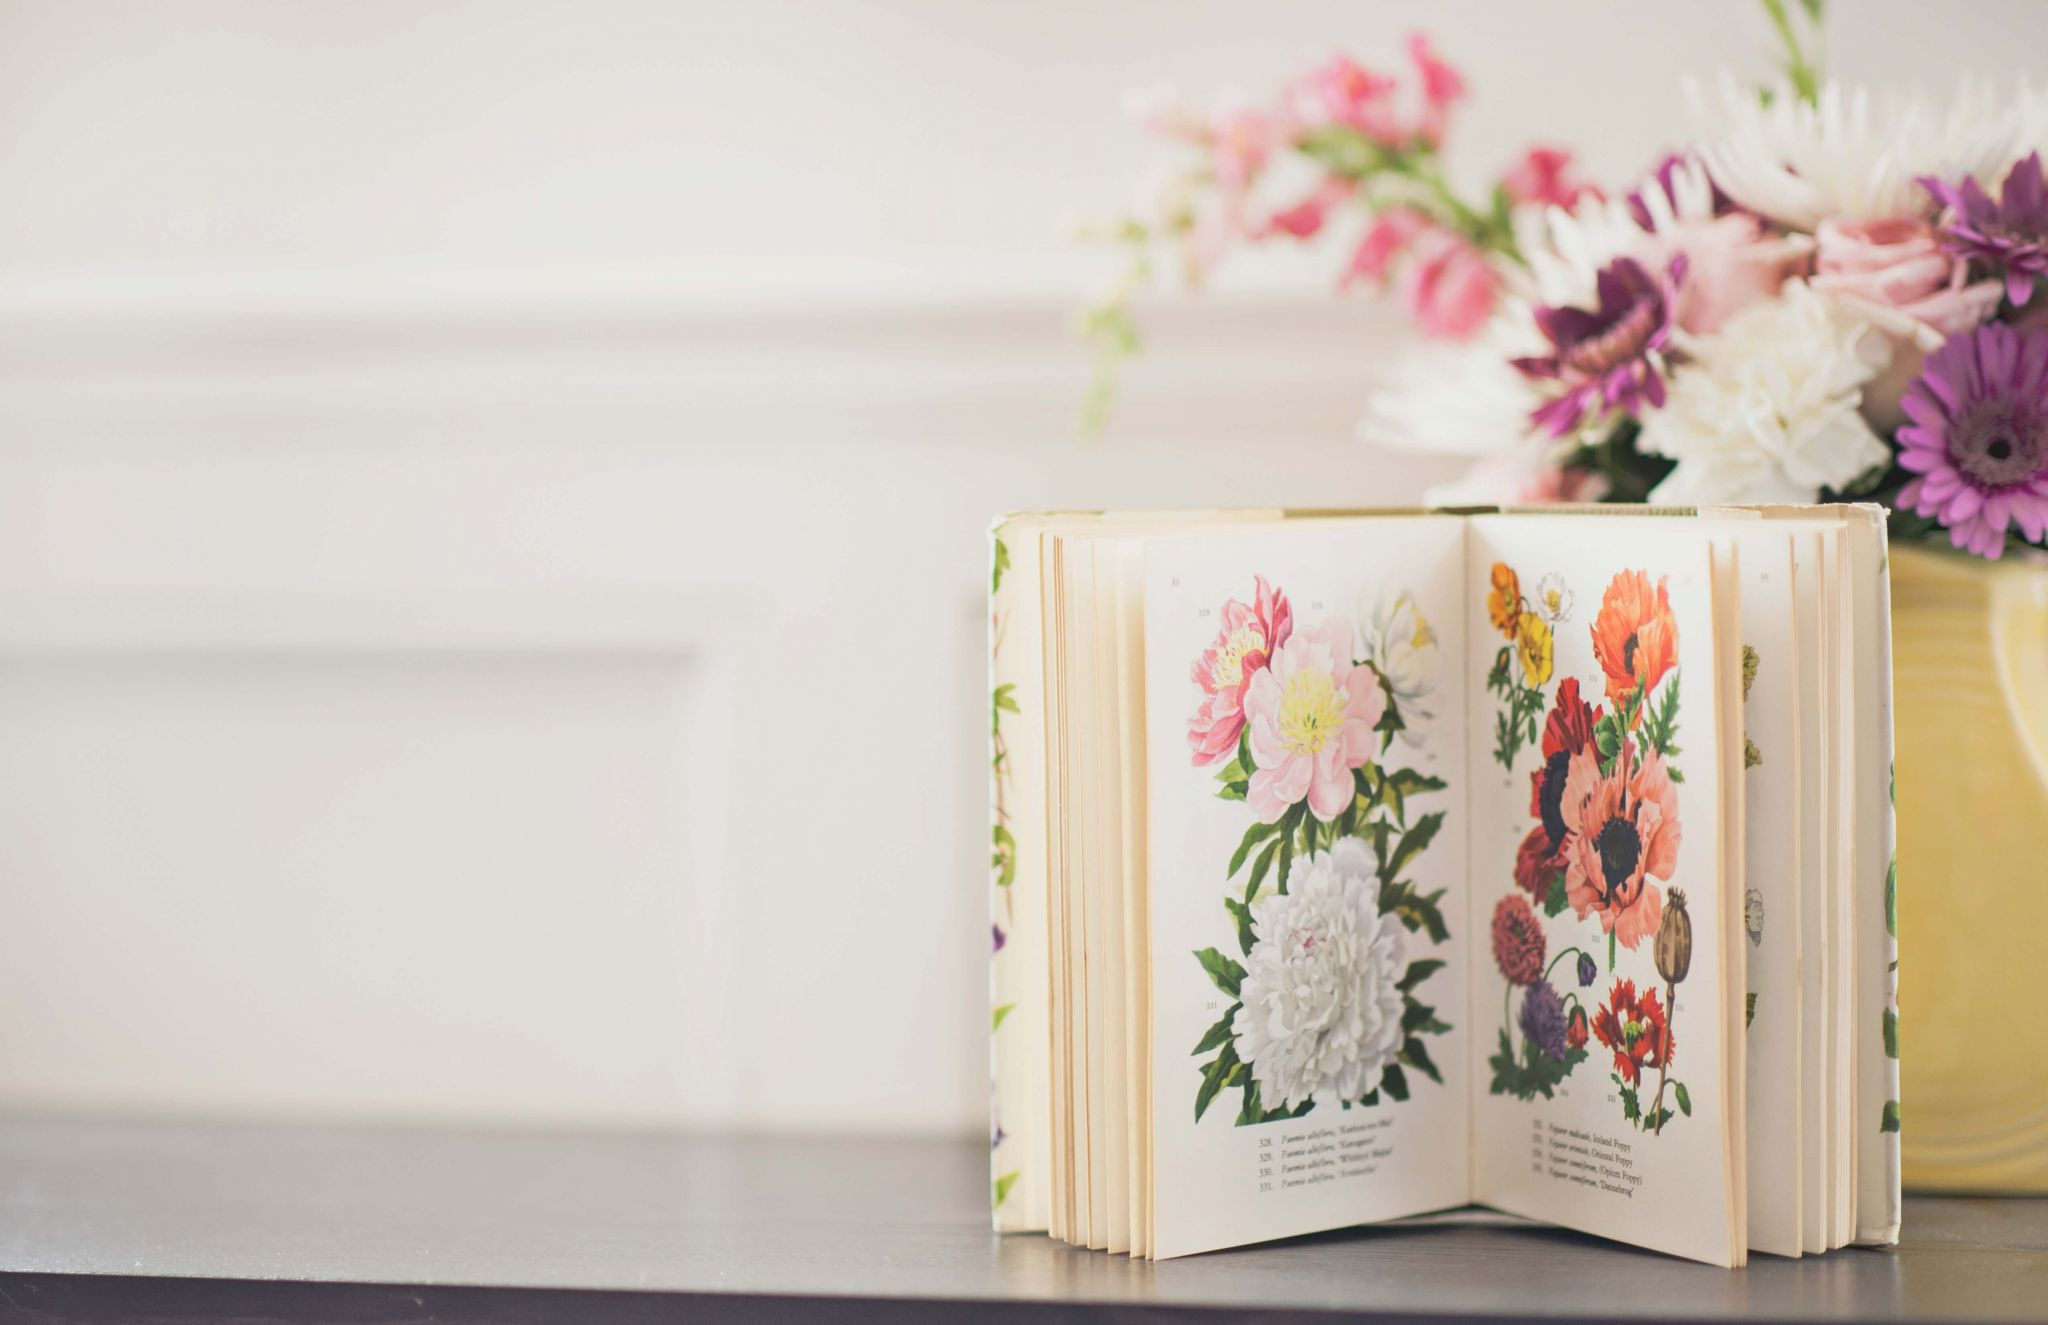 free and bargain books linky - pretty illustrated floral book